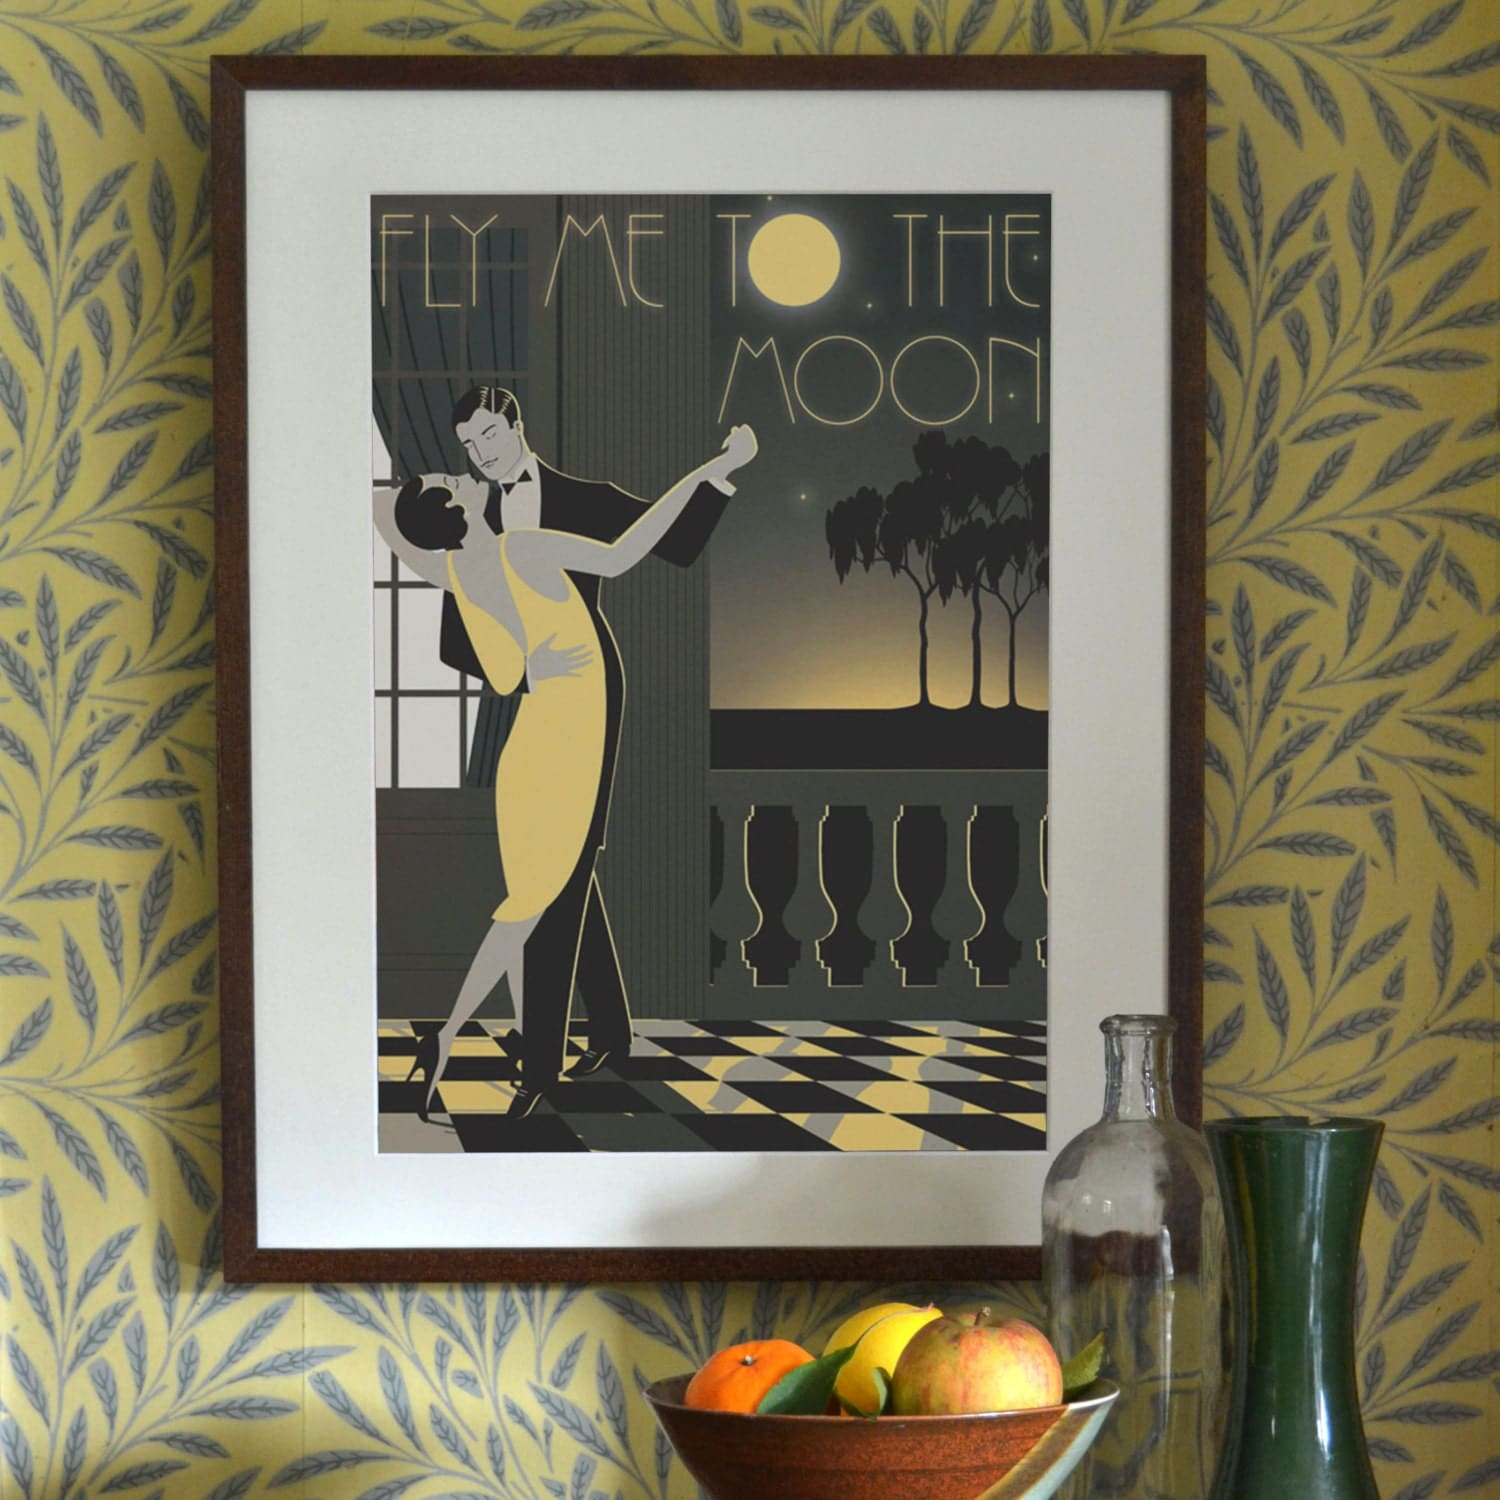 Art Deco Posters: Original Design A3 A2 A1 Art Deco Bauhaus Poster By